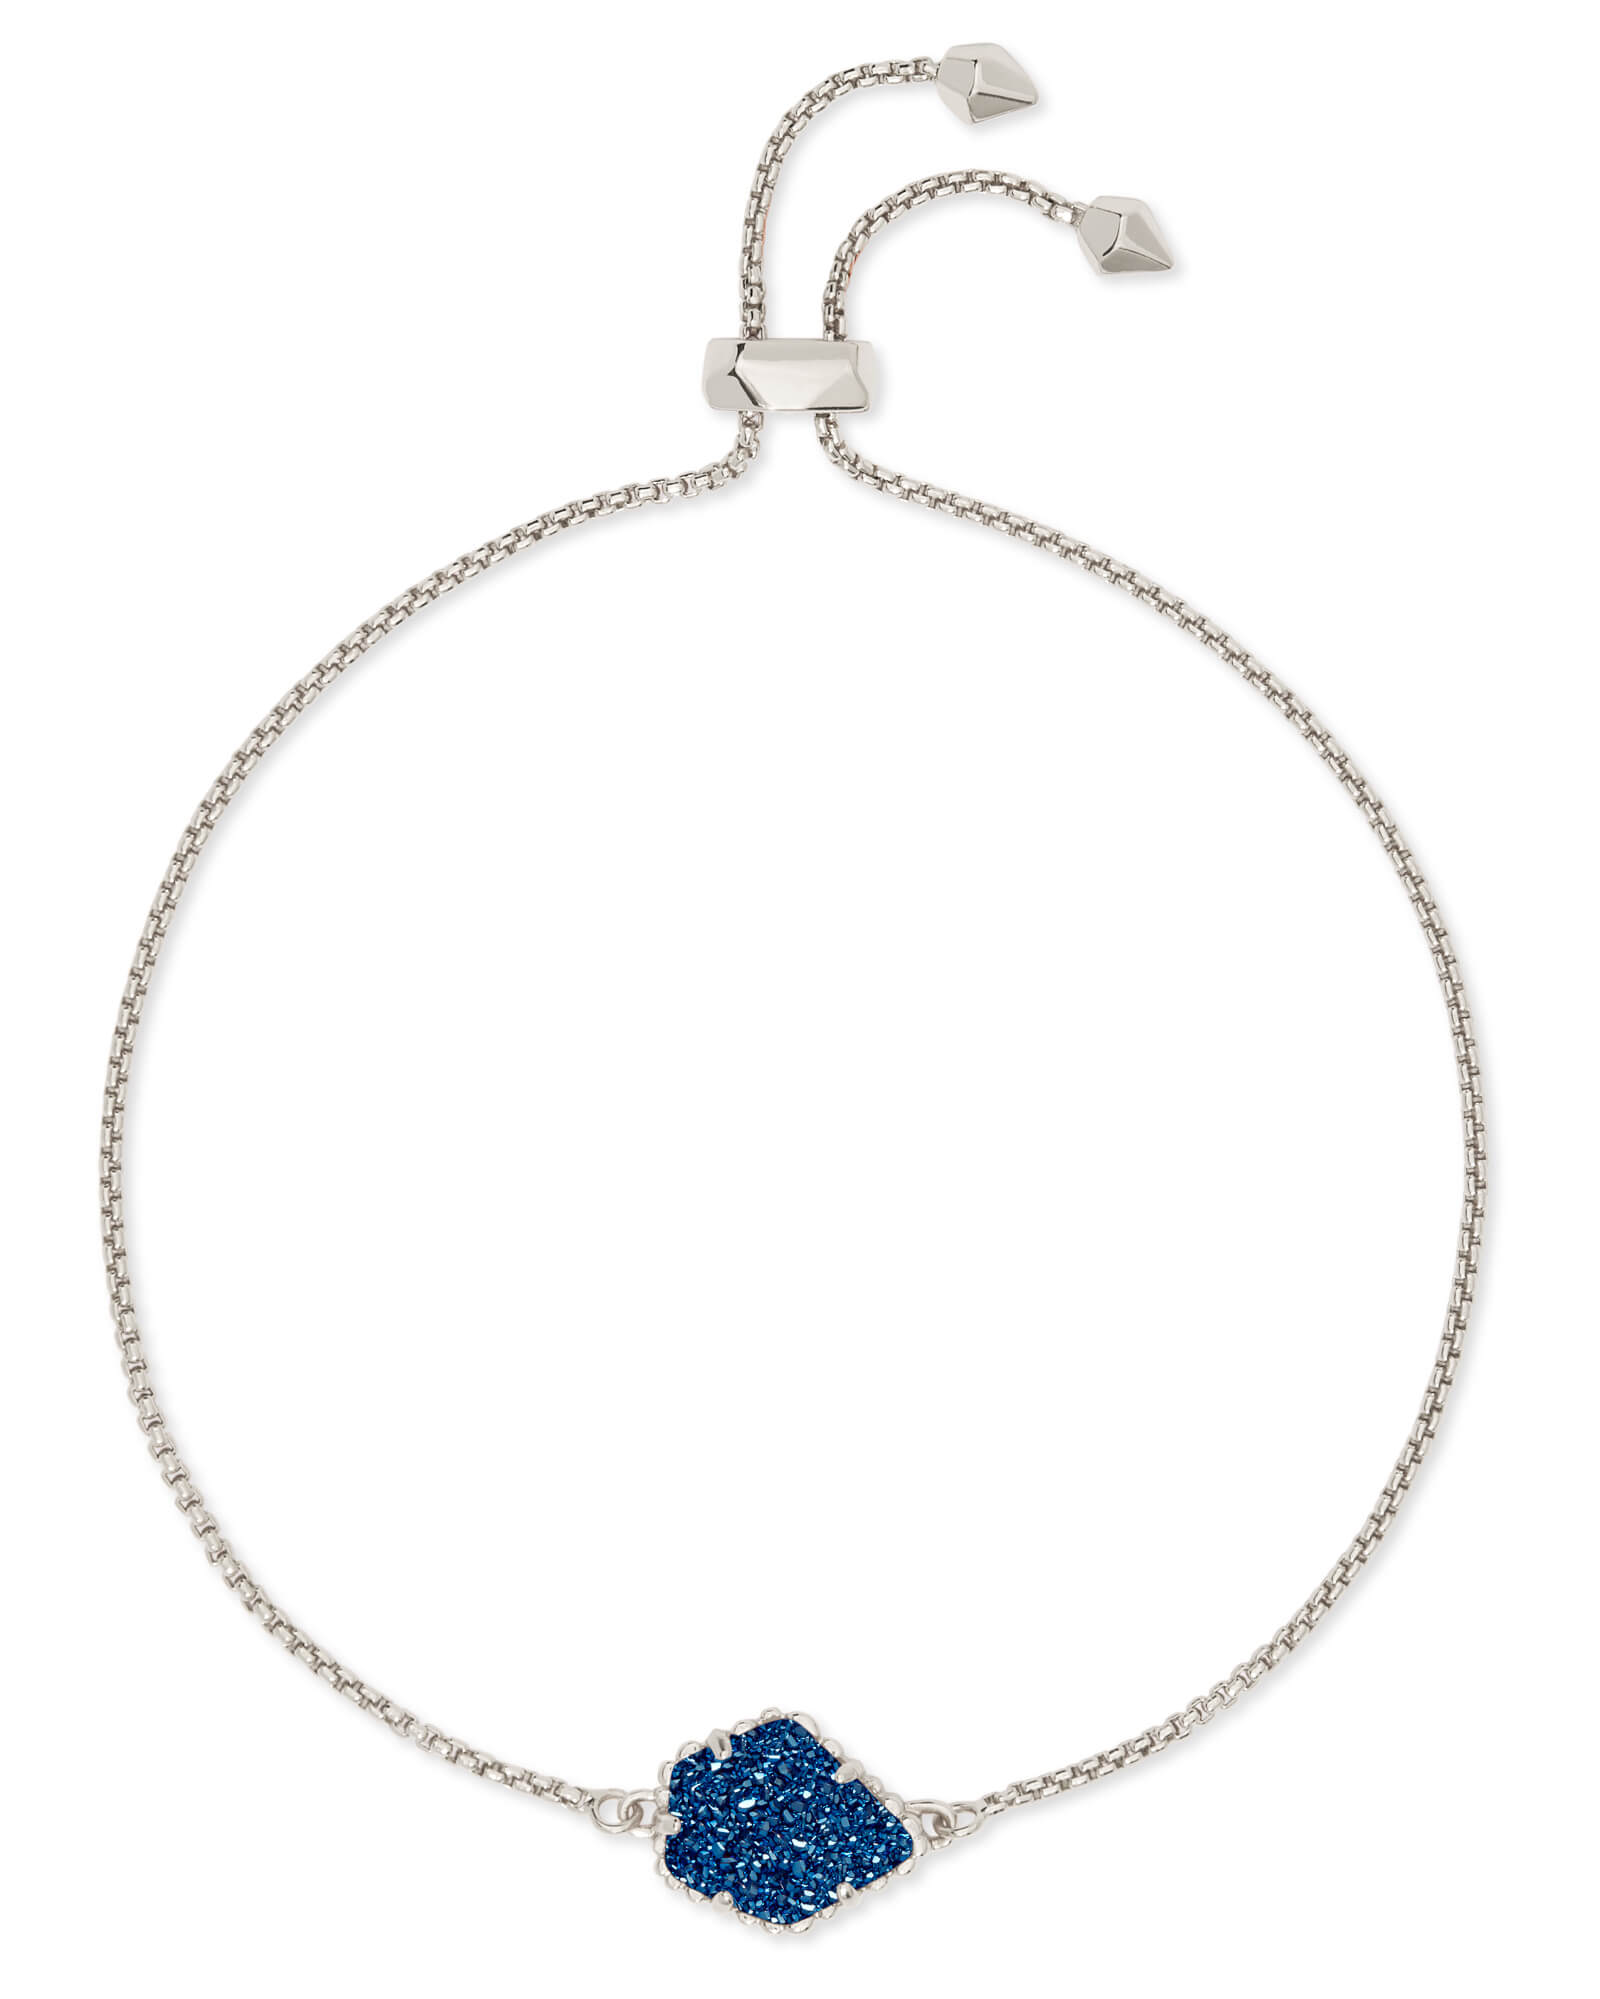 Theo Silver Adjustable Chain Bracelet in Blue Drusy